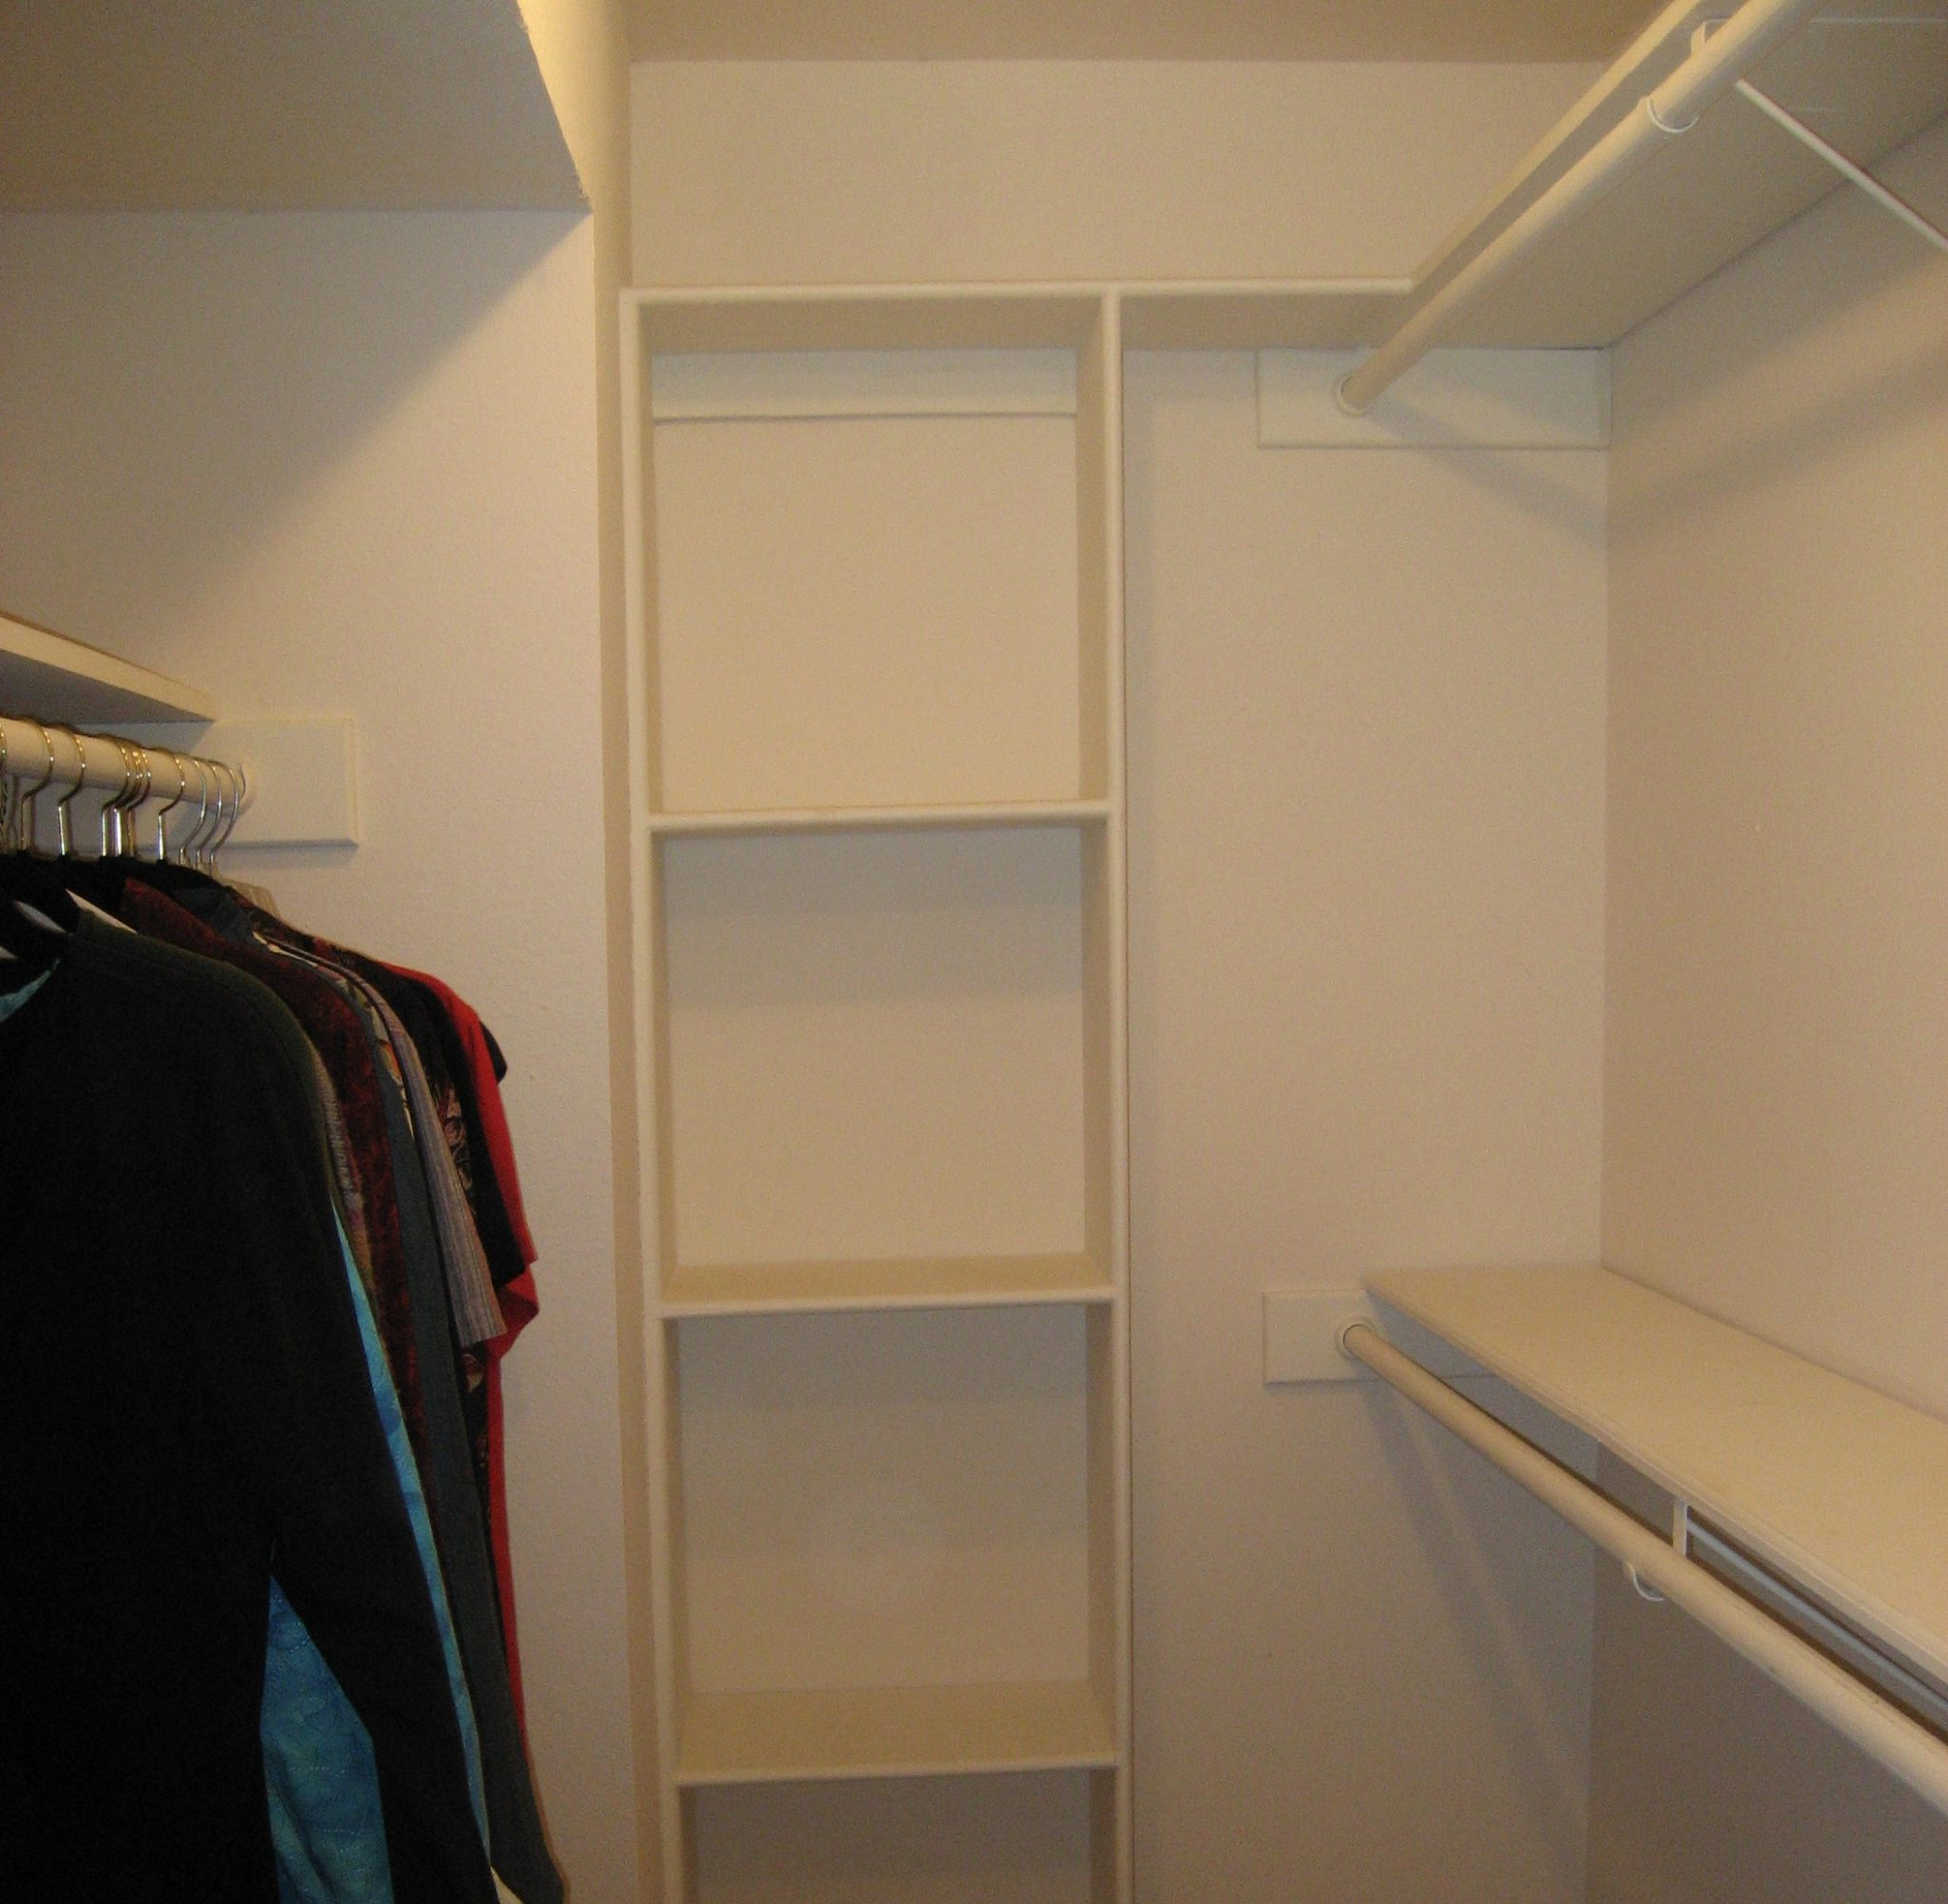 Now, This Closet Is In Austin, Texas. If The Builder Had Intended These  Built In Cubbies To Be Used For Storing A Collection Of Cowboy Boots, The  Height Of ...